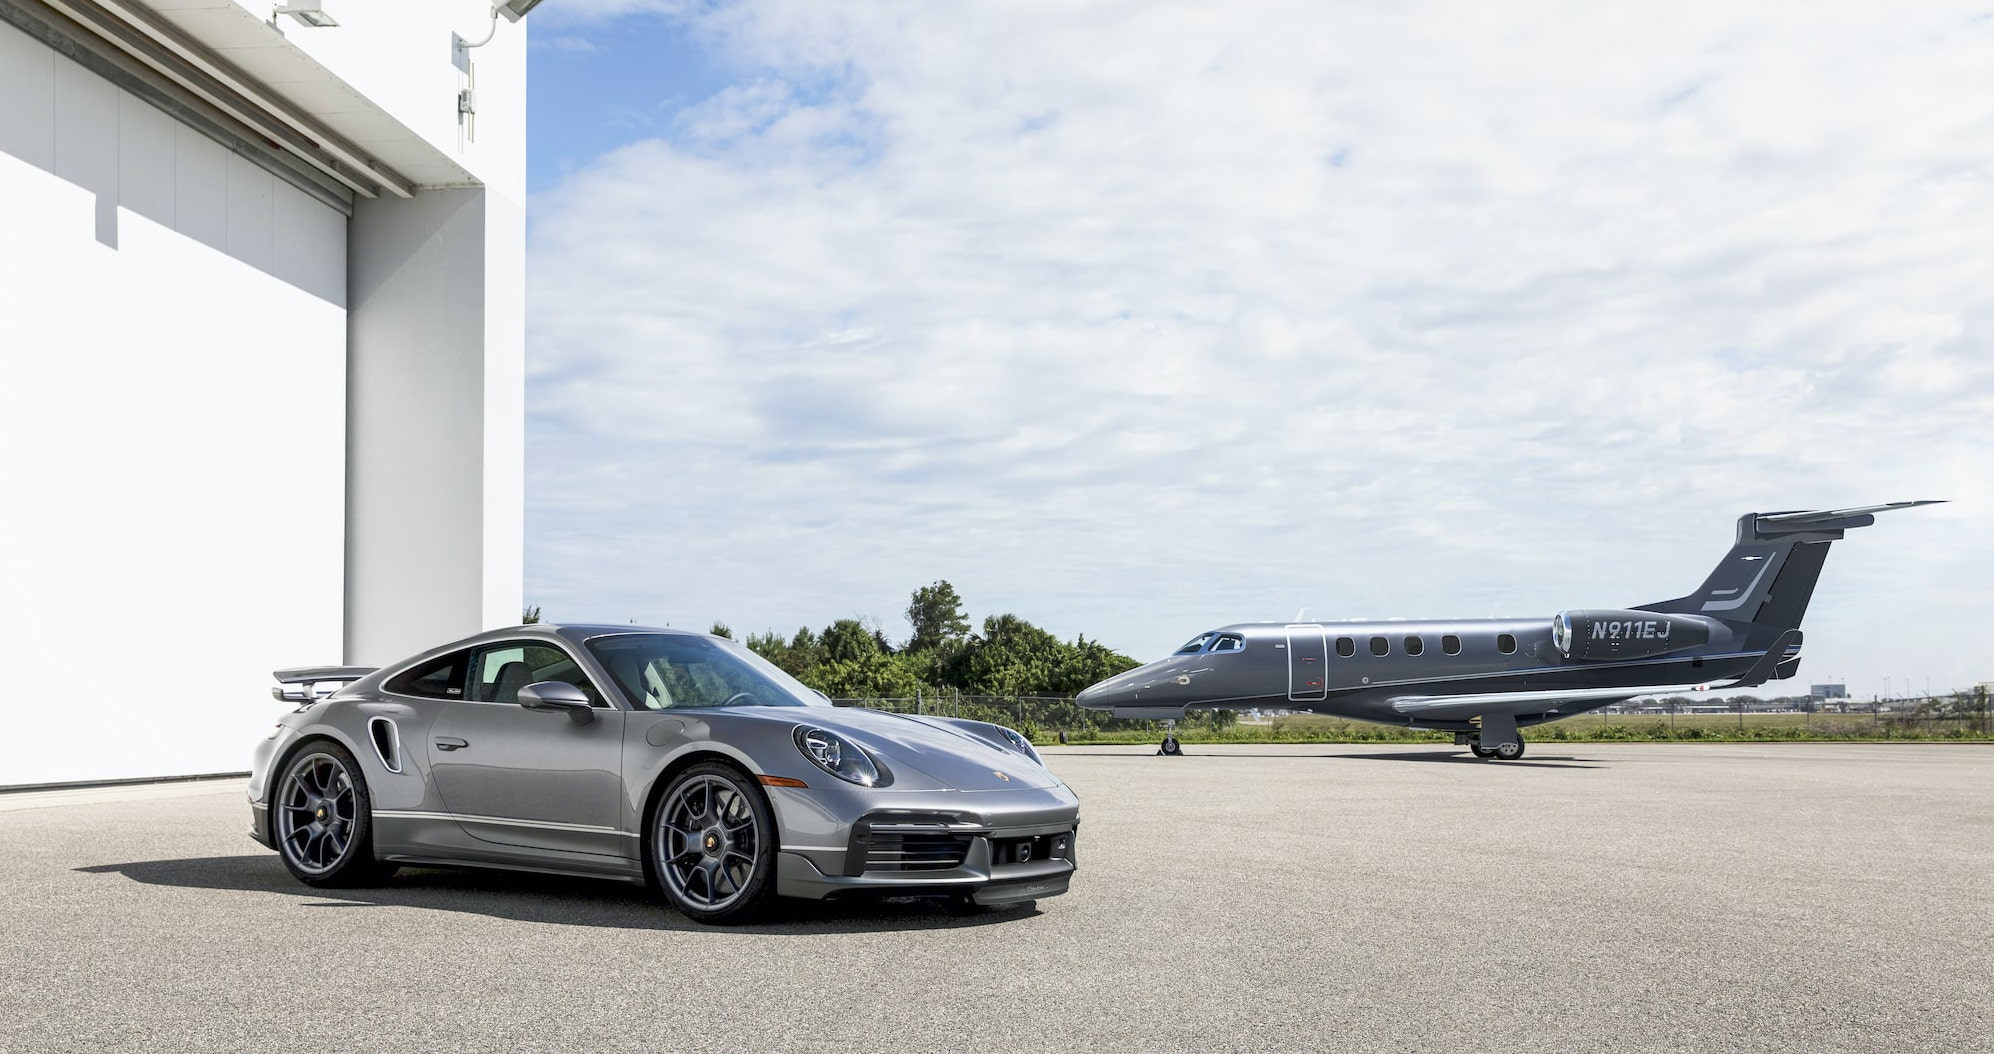 The Duet Porsche and Embraer